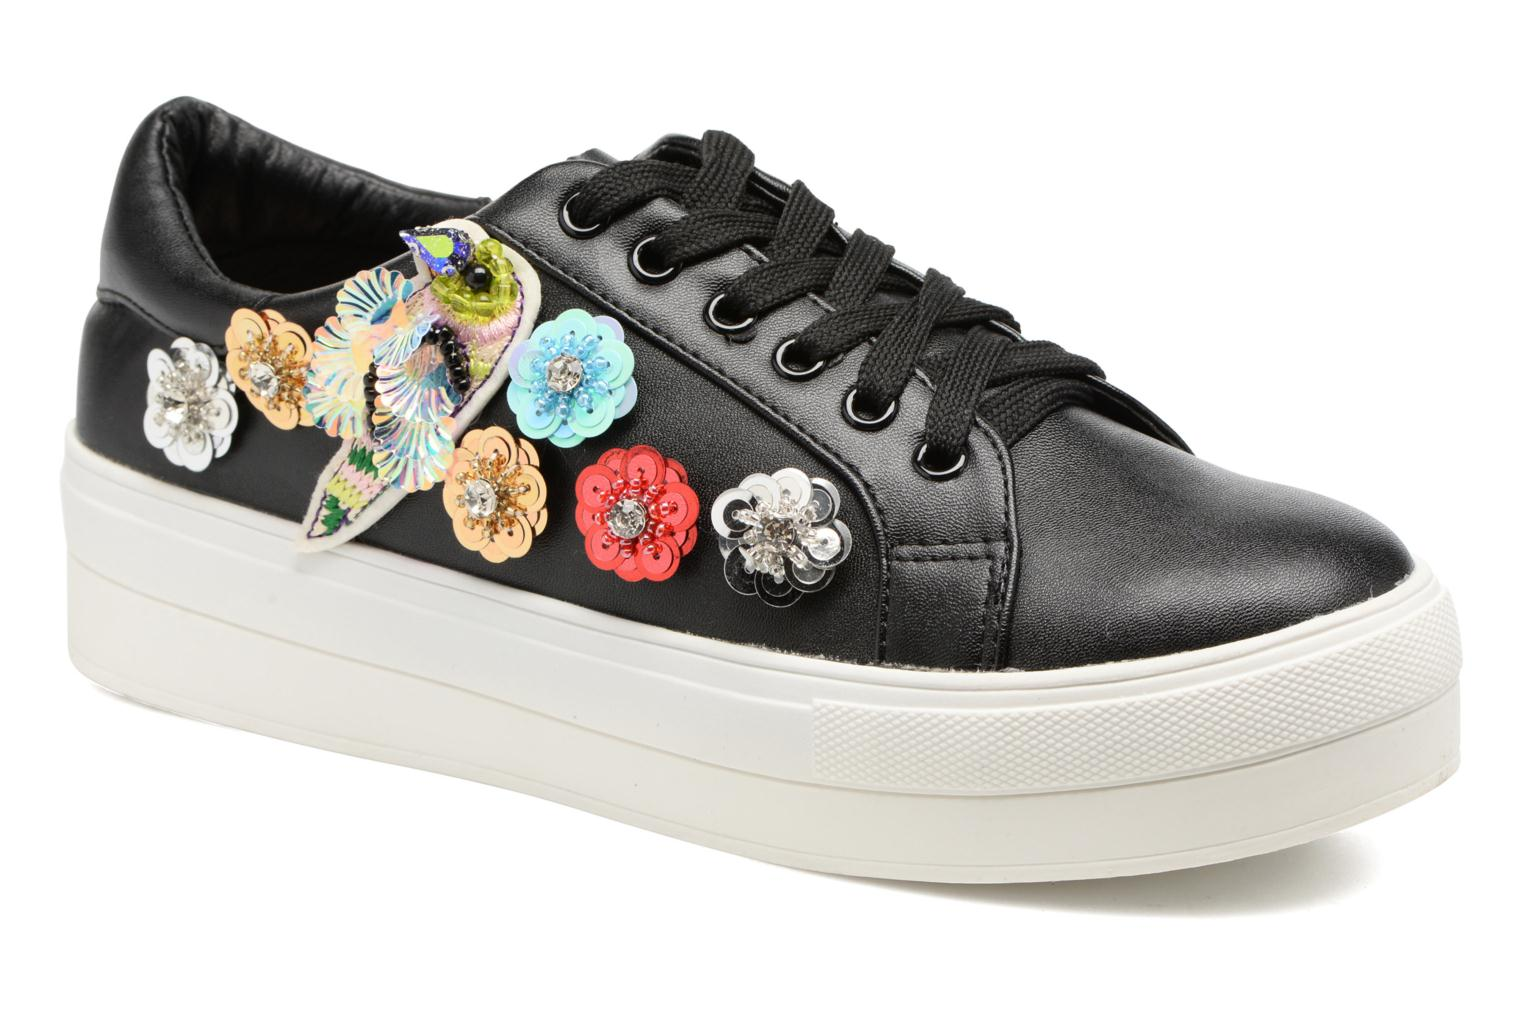 Flower Sneakers Black